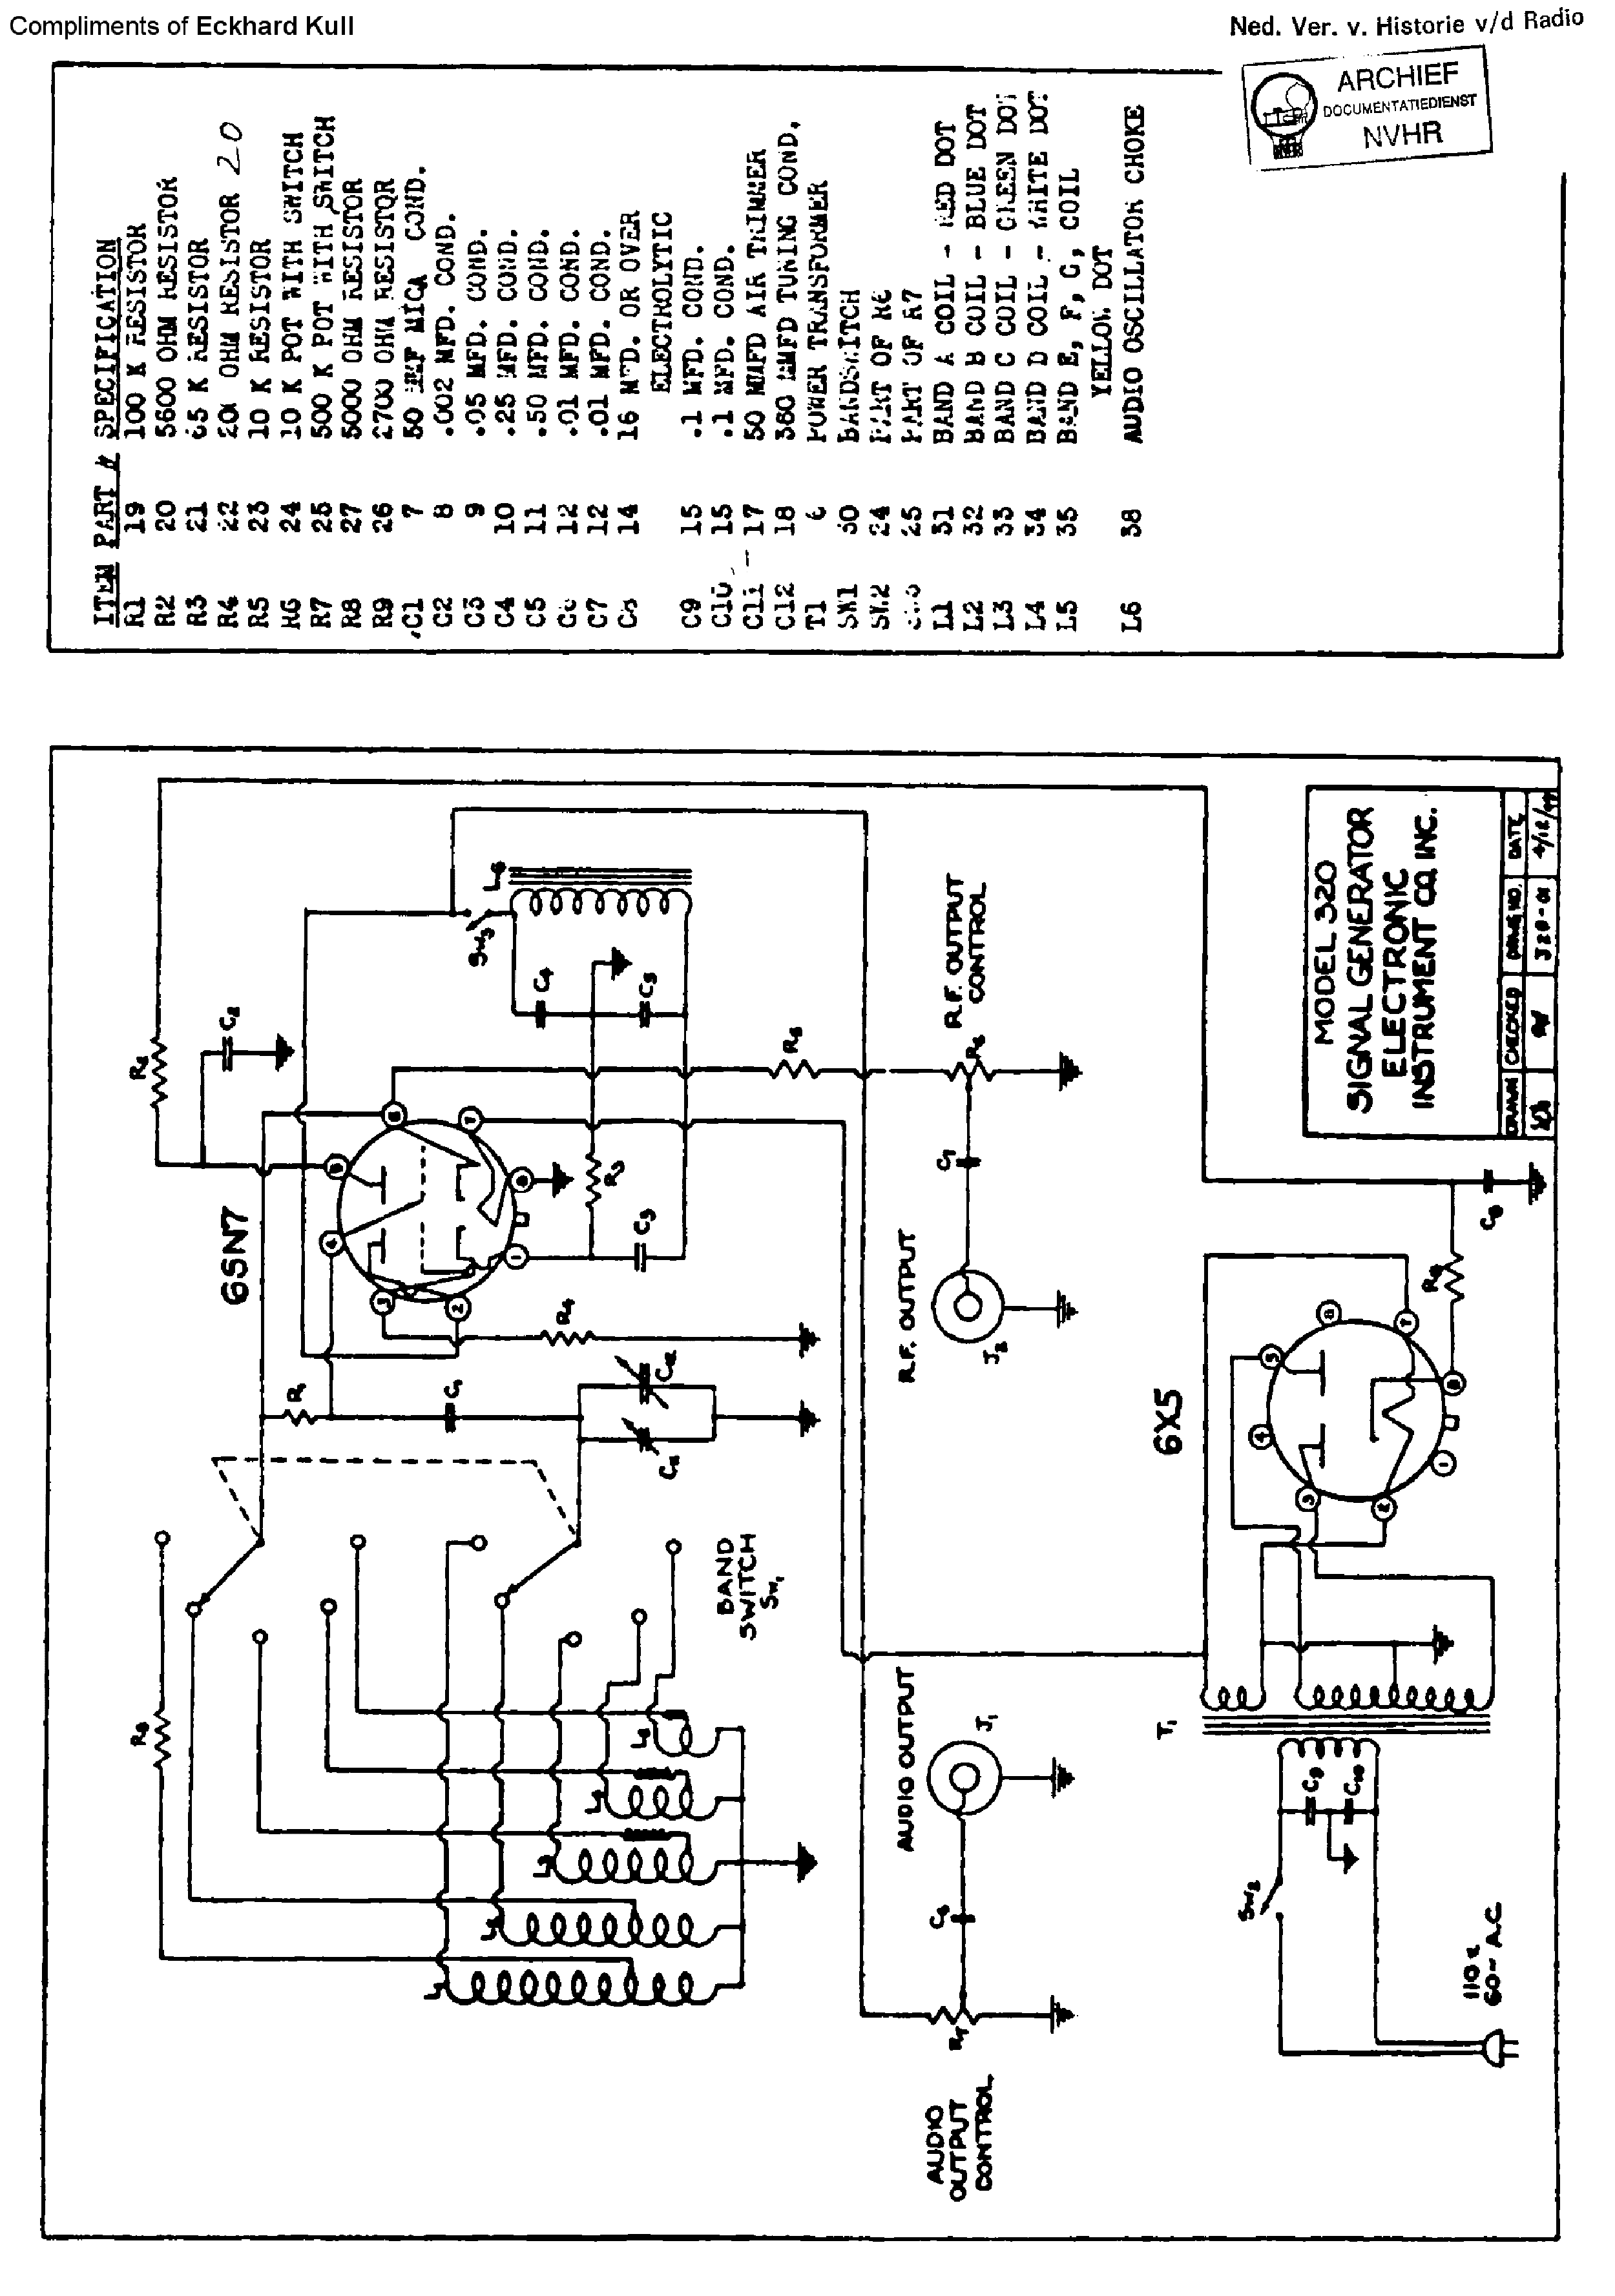 Anyone Have A Readable Schematic For An Eico 320 Signal